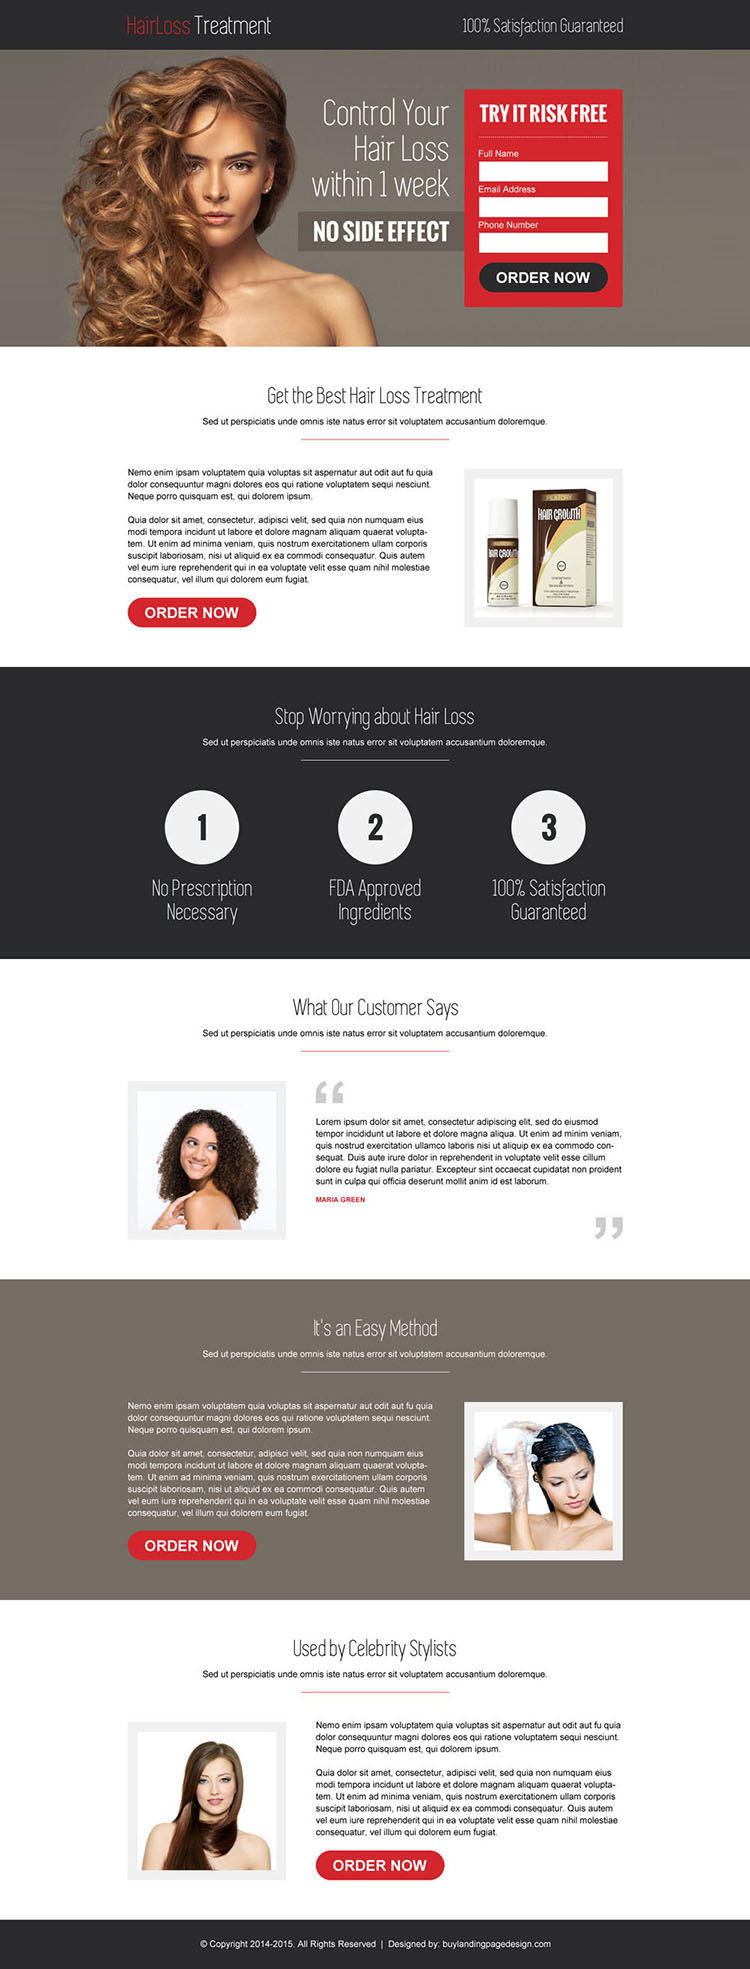 hair loss product selling lead capture responsive landing page design